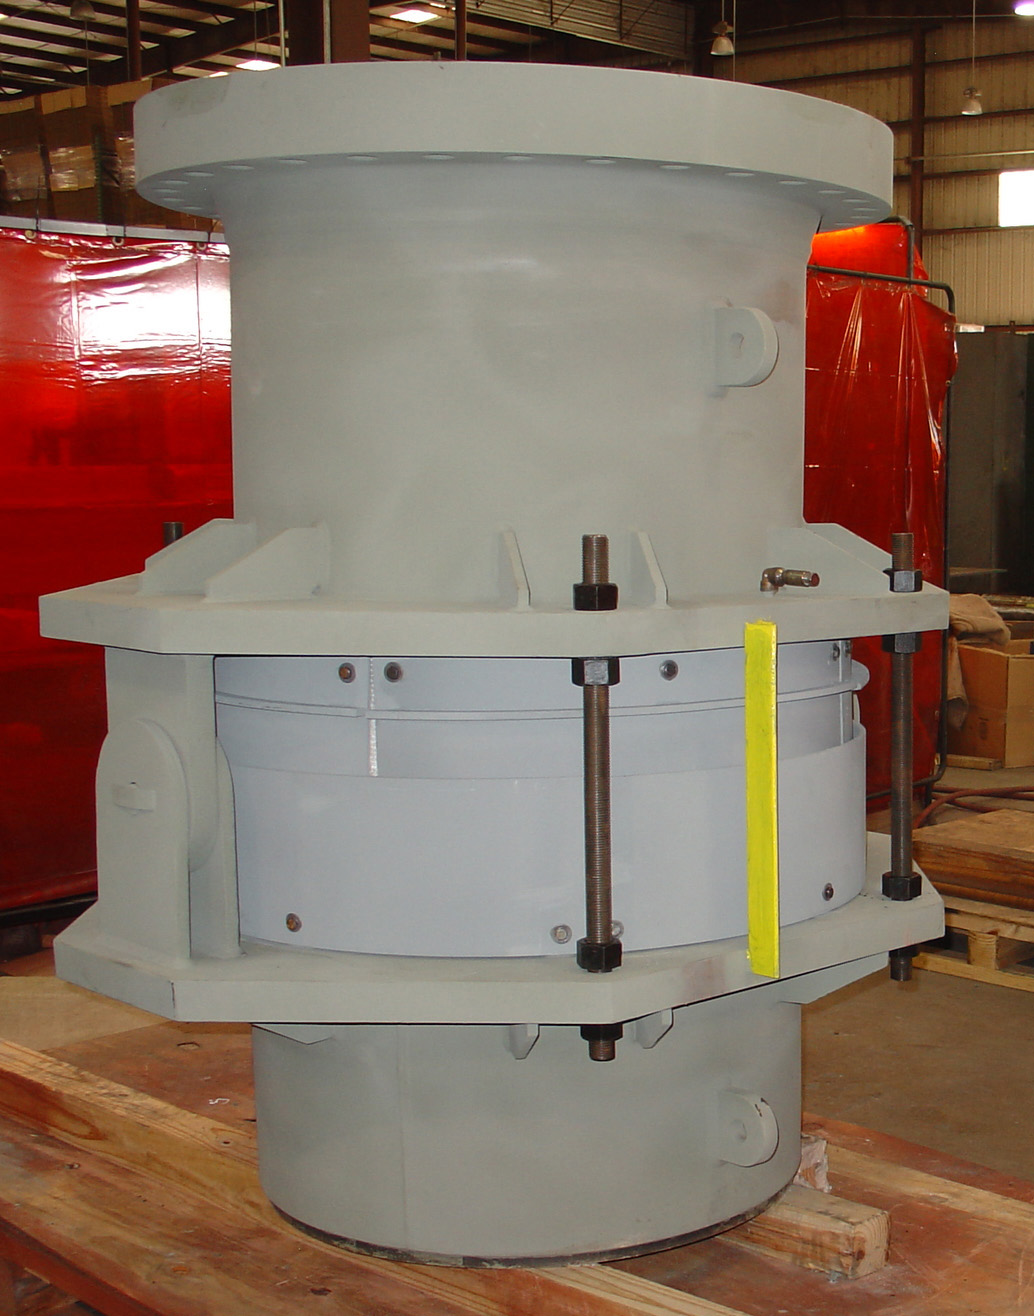 Hinged expansion joint wikipedia